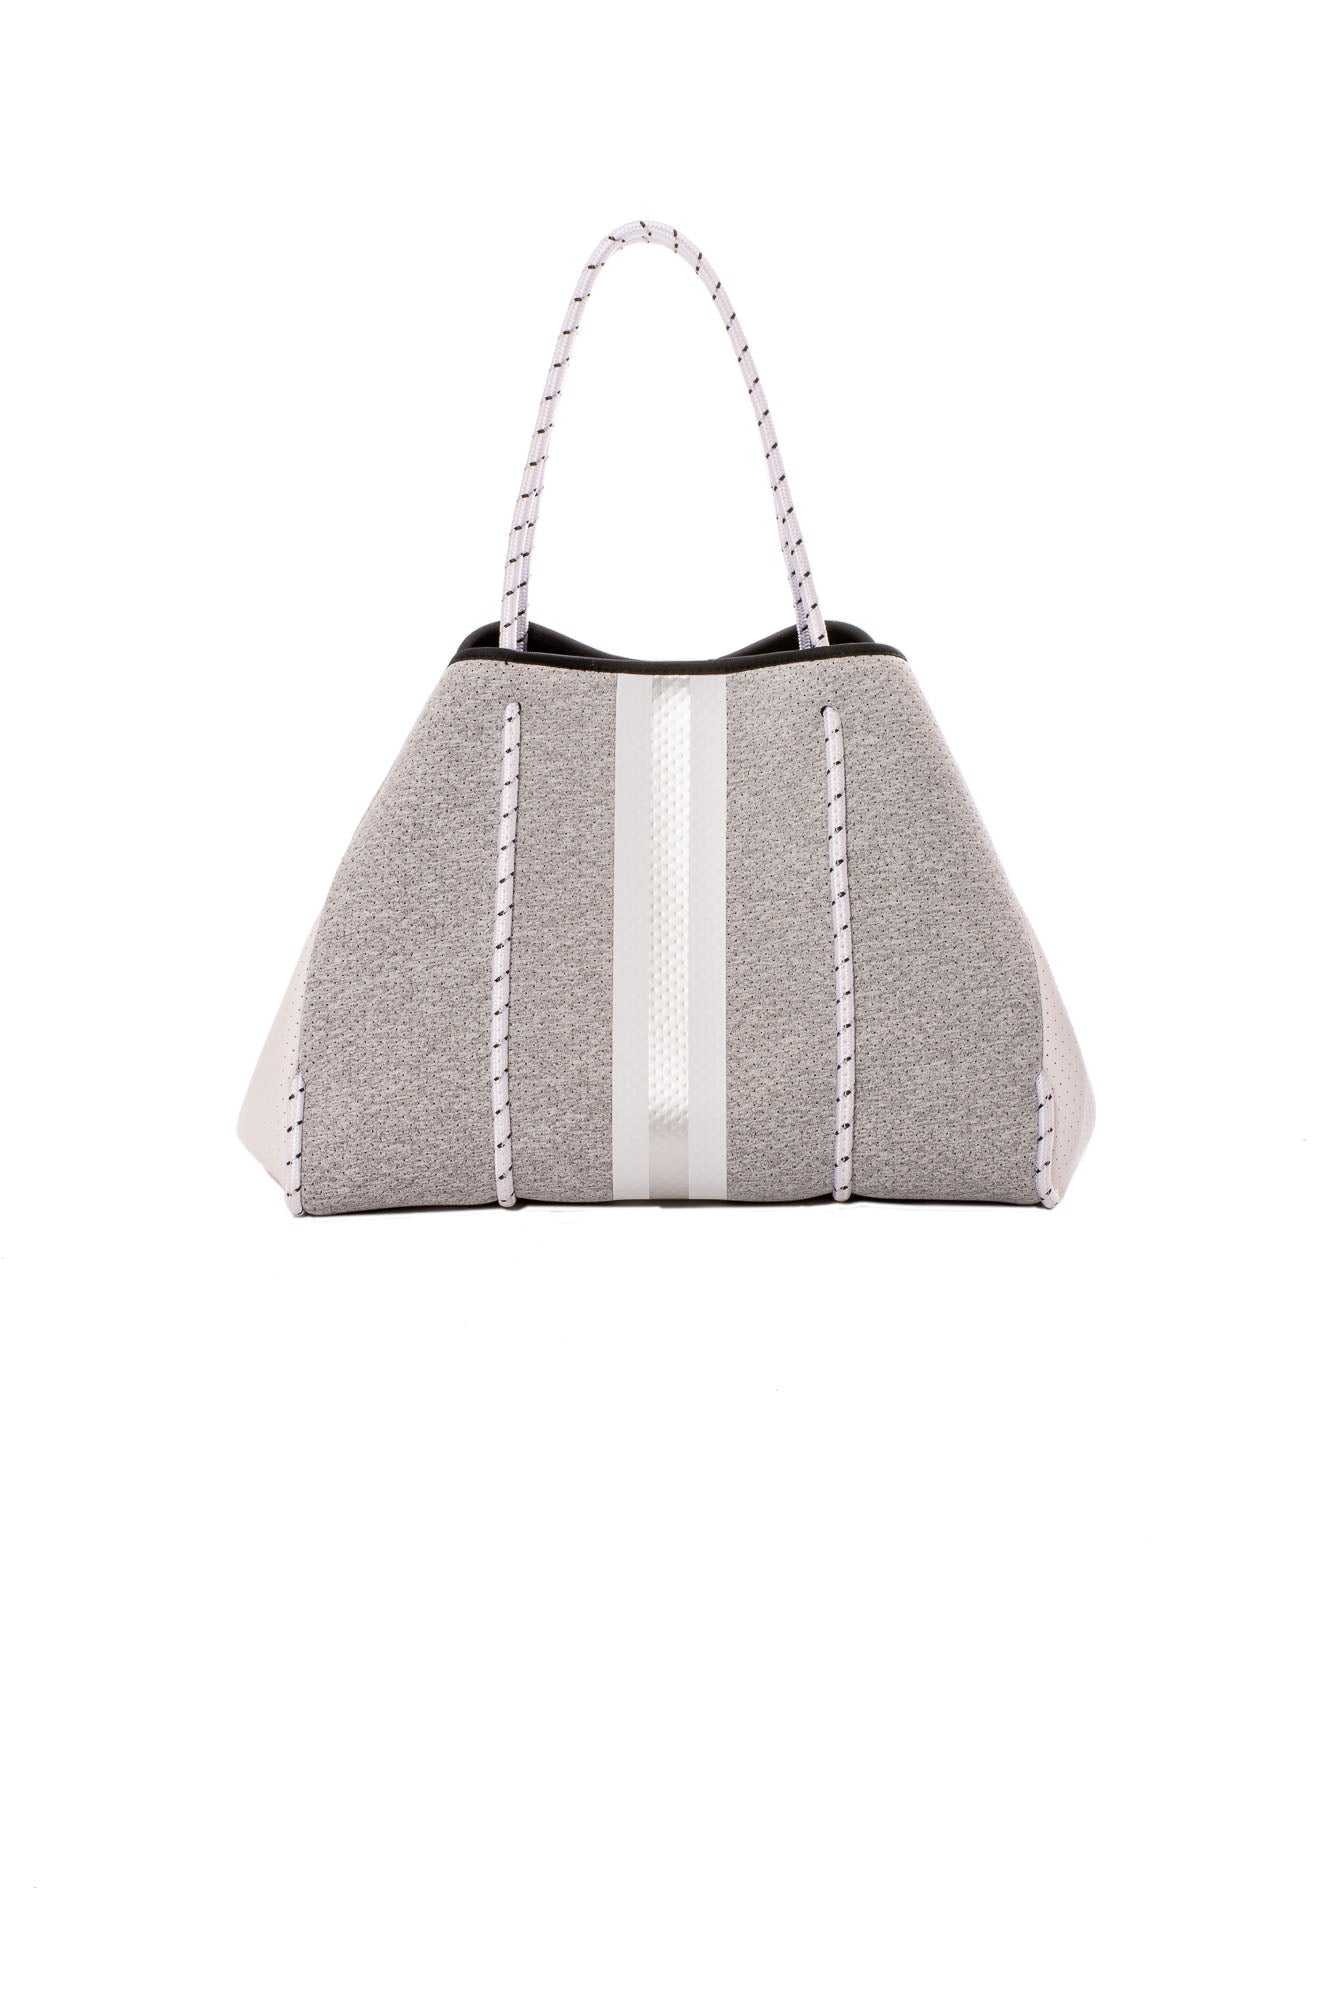 Haute Shore - Greyson Aspen Neoprene Tote Bag w/Zipper Wristlet Inside (Aspen, Marled Heather & White/Silver)